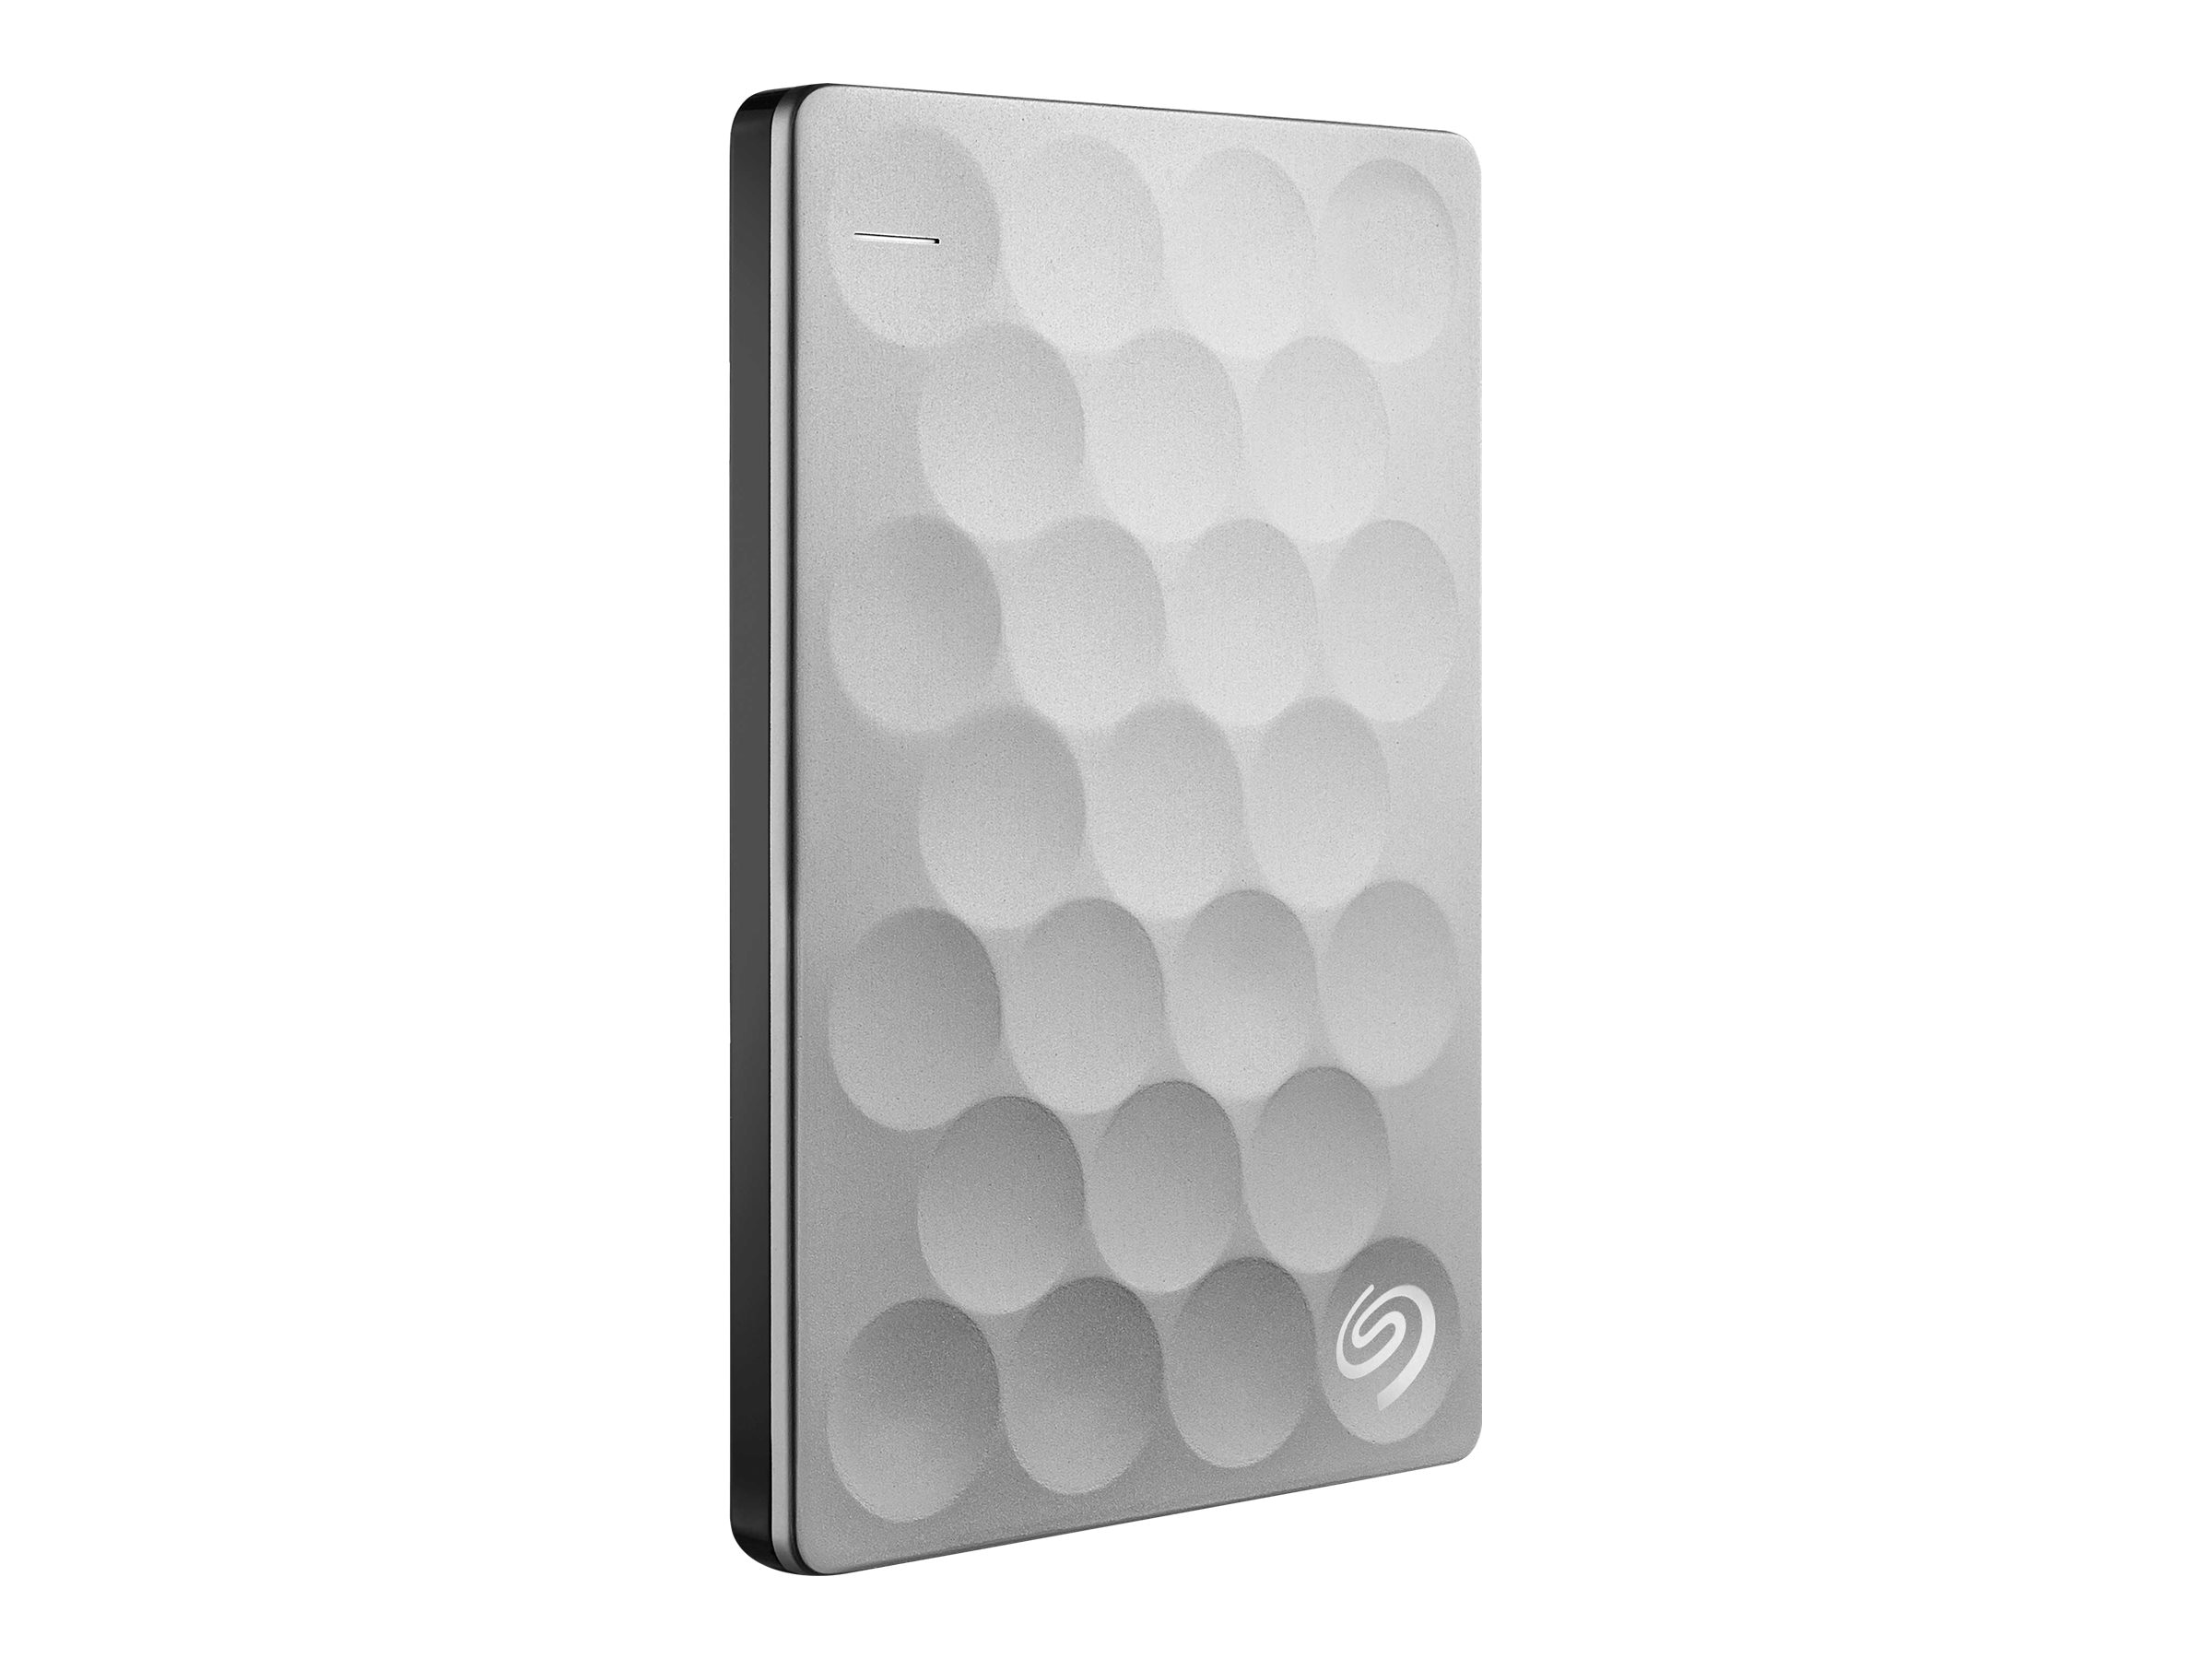 Seagate 2TB BackupPlus Ultra Slim External Hard Drive - Platinum, STEH2000100, 31604106, Hard Drives - External